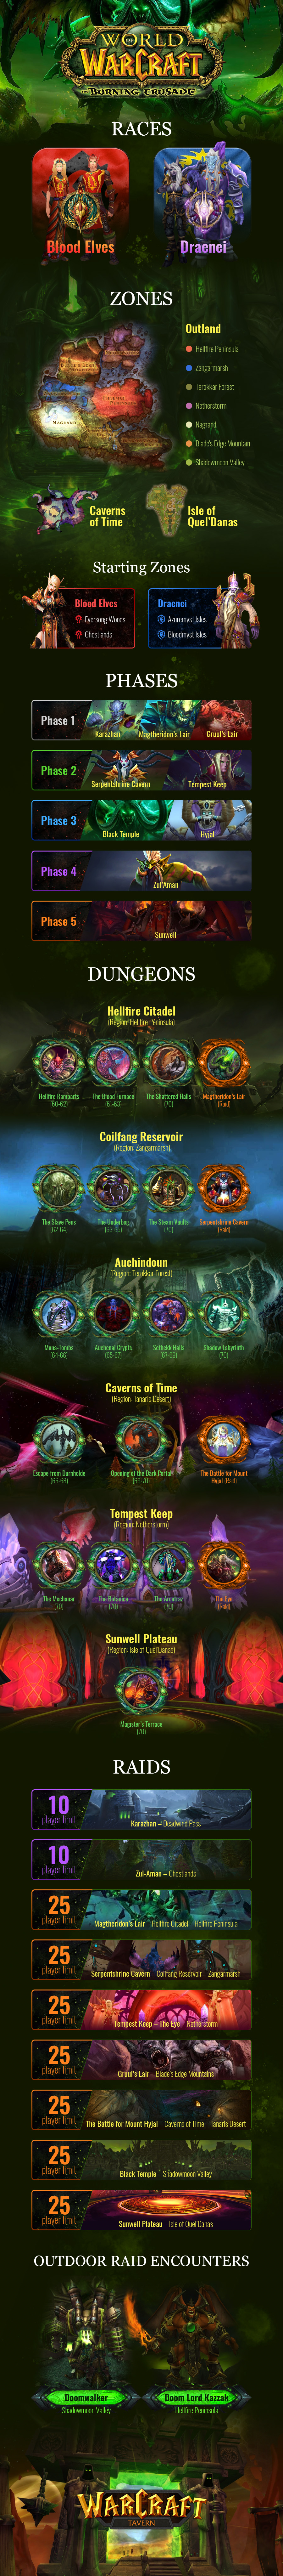 The Burning Crusade Classic Infographic - Phases, Raids, Dungeons - TBC Classic